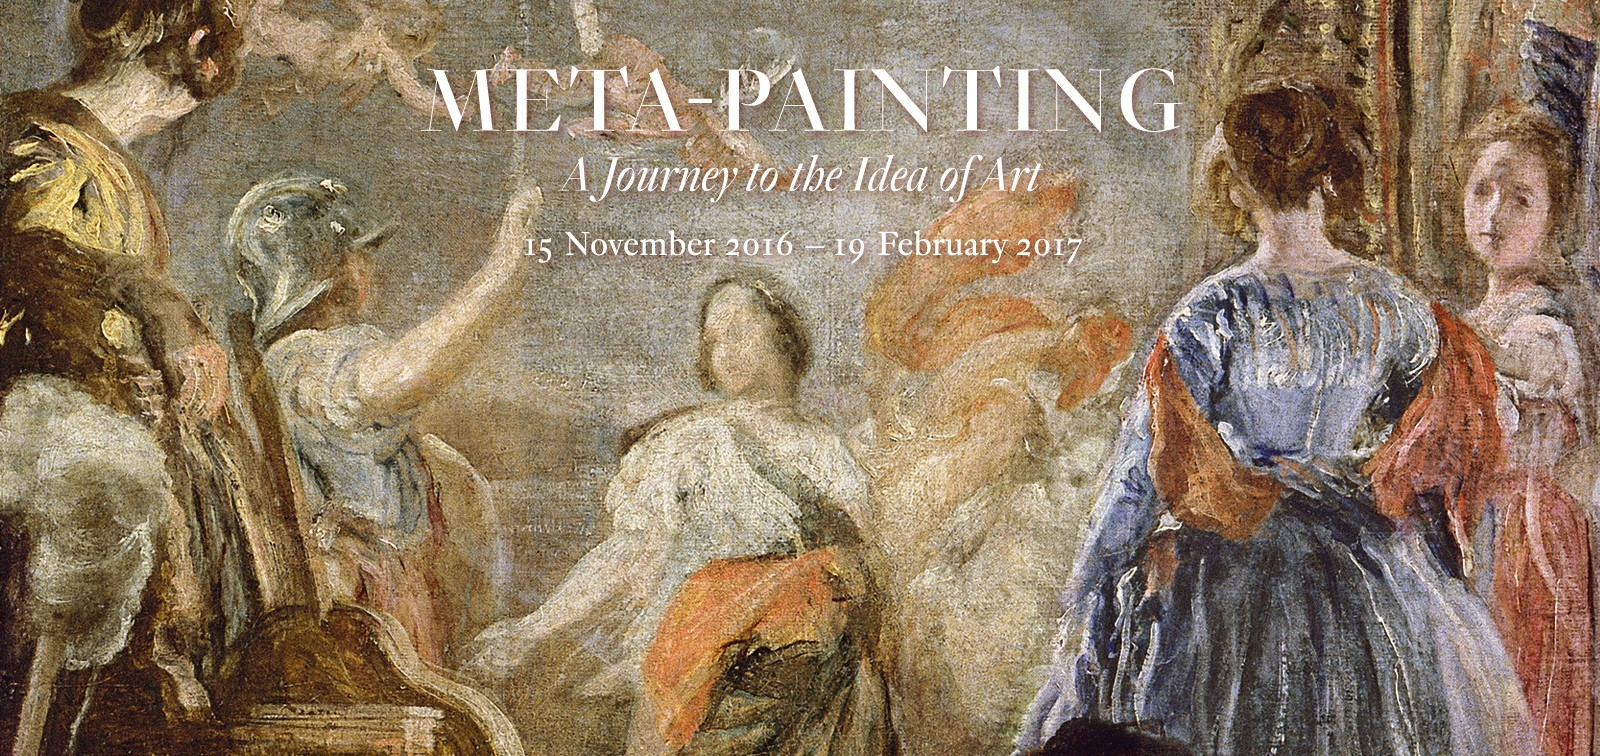 Meta-painting. A Journey to the Idea of Art